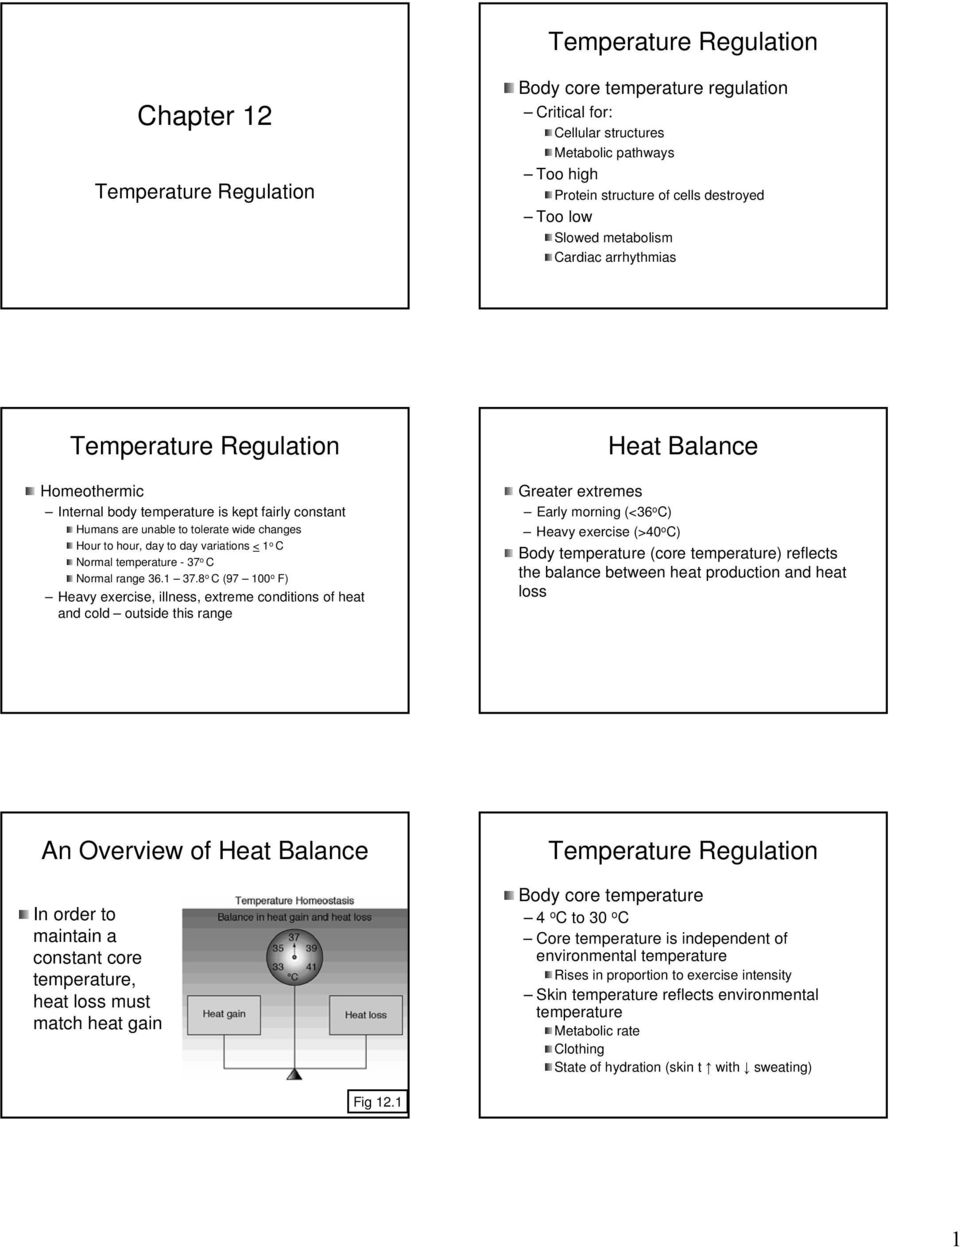 8 o C (97 100 o F) Heavy exercise, illness, extreme conditions of heat and cold outside this range Heat Balance Greater extremes Early morning (<36 o C) Heavy exercise (>40 o C) Body temperature